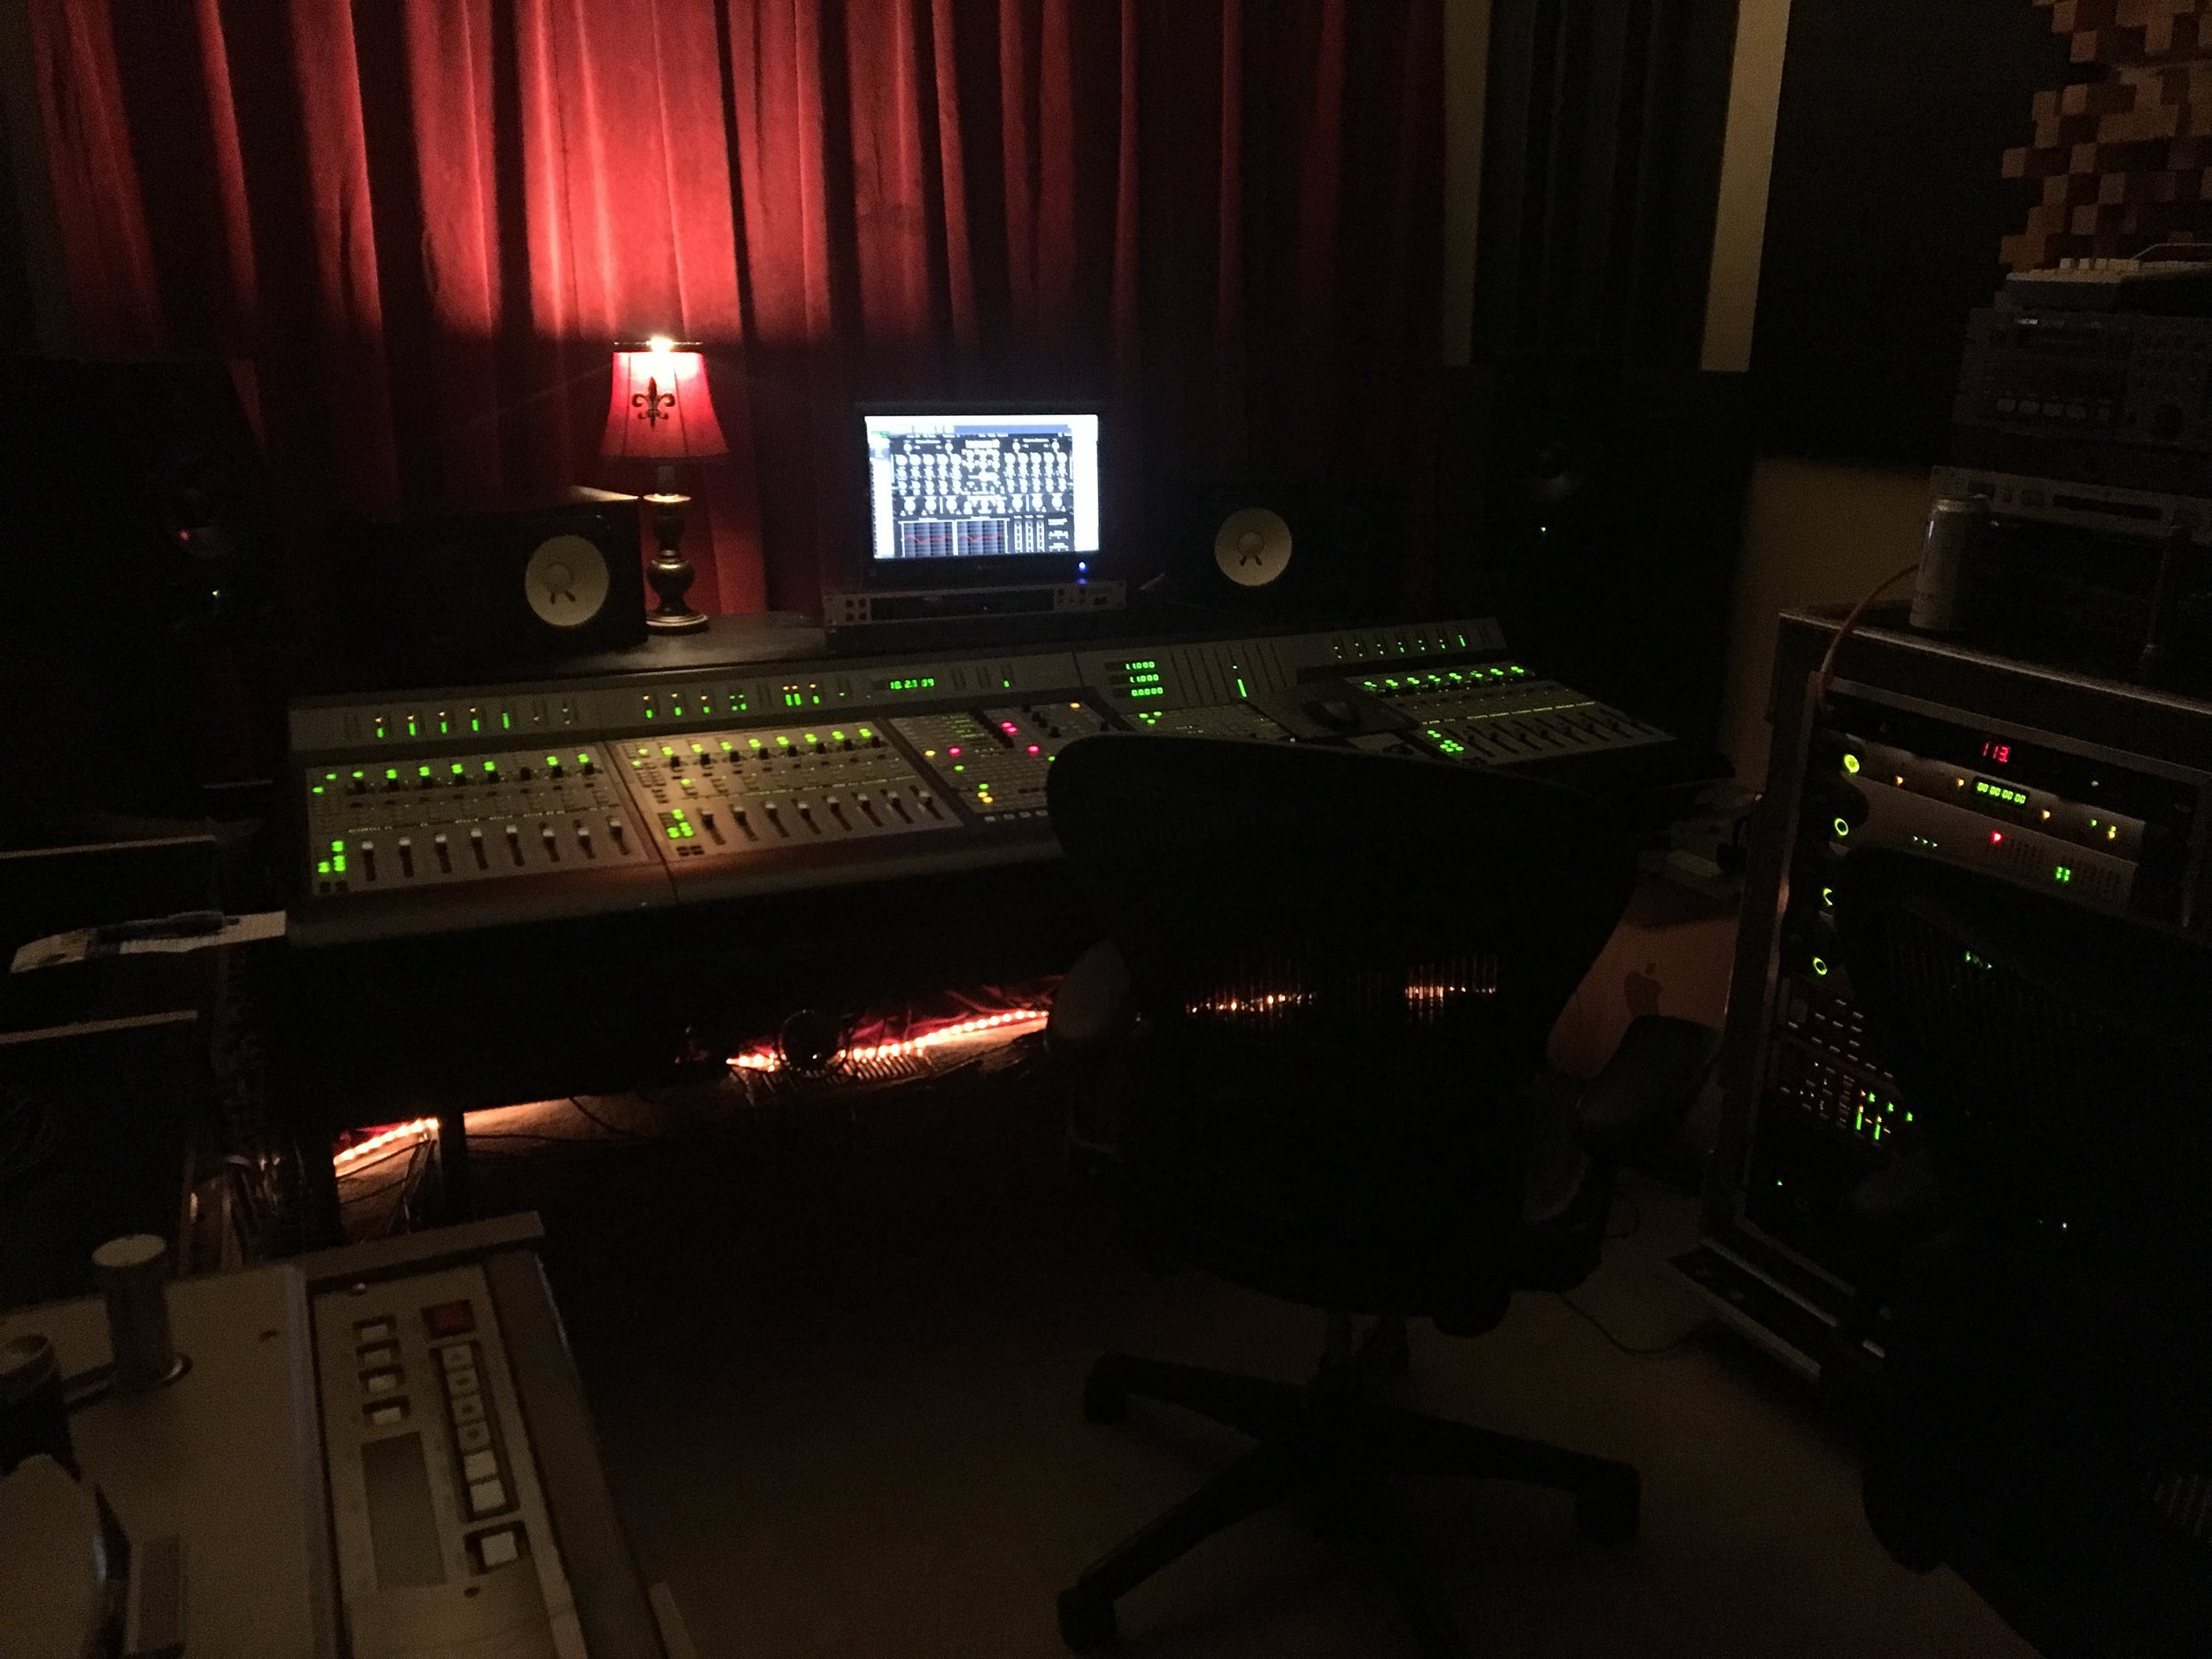 Audio Post Production Services Include:   - Editing  - Mixing  - Mastering  - In-person engineering sessions  - Audio aesthetic consult and collaboration  - Audio Restoration  - Audio Analysis  - Encoding of audio for production, including CD and digital metadata  - Production of physical media (CD, vinyl)  - Digital distribution (Spotify, iTunes, Amazon, and many more)